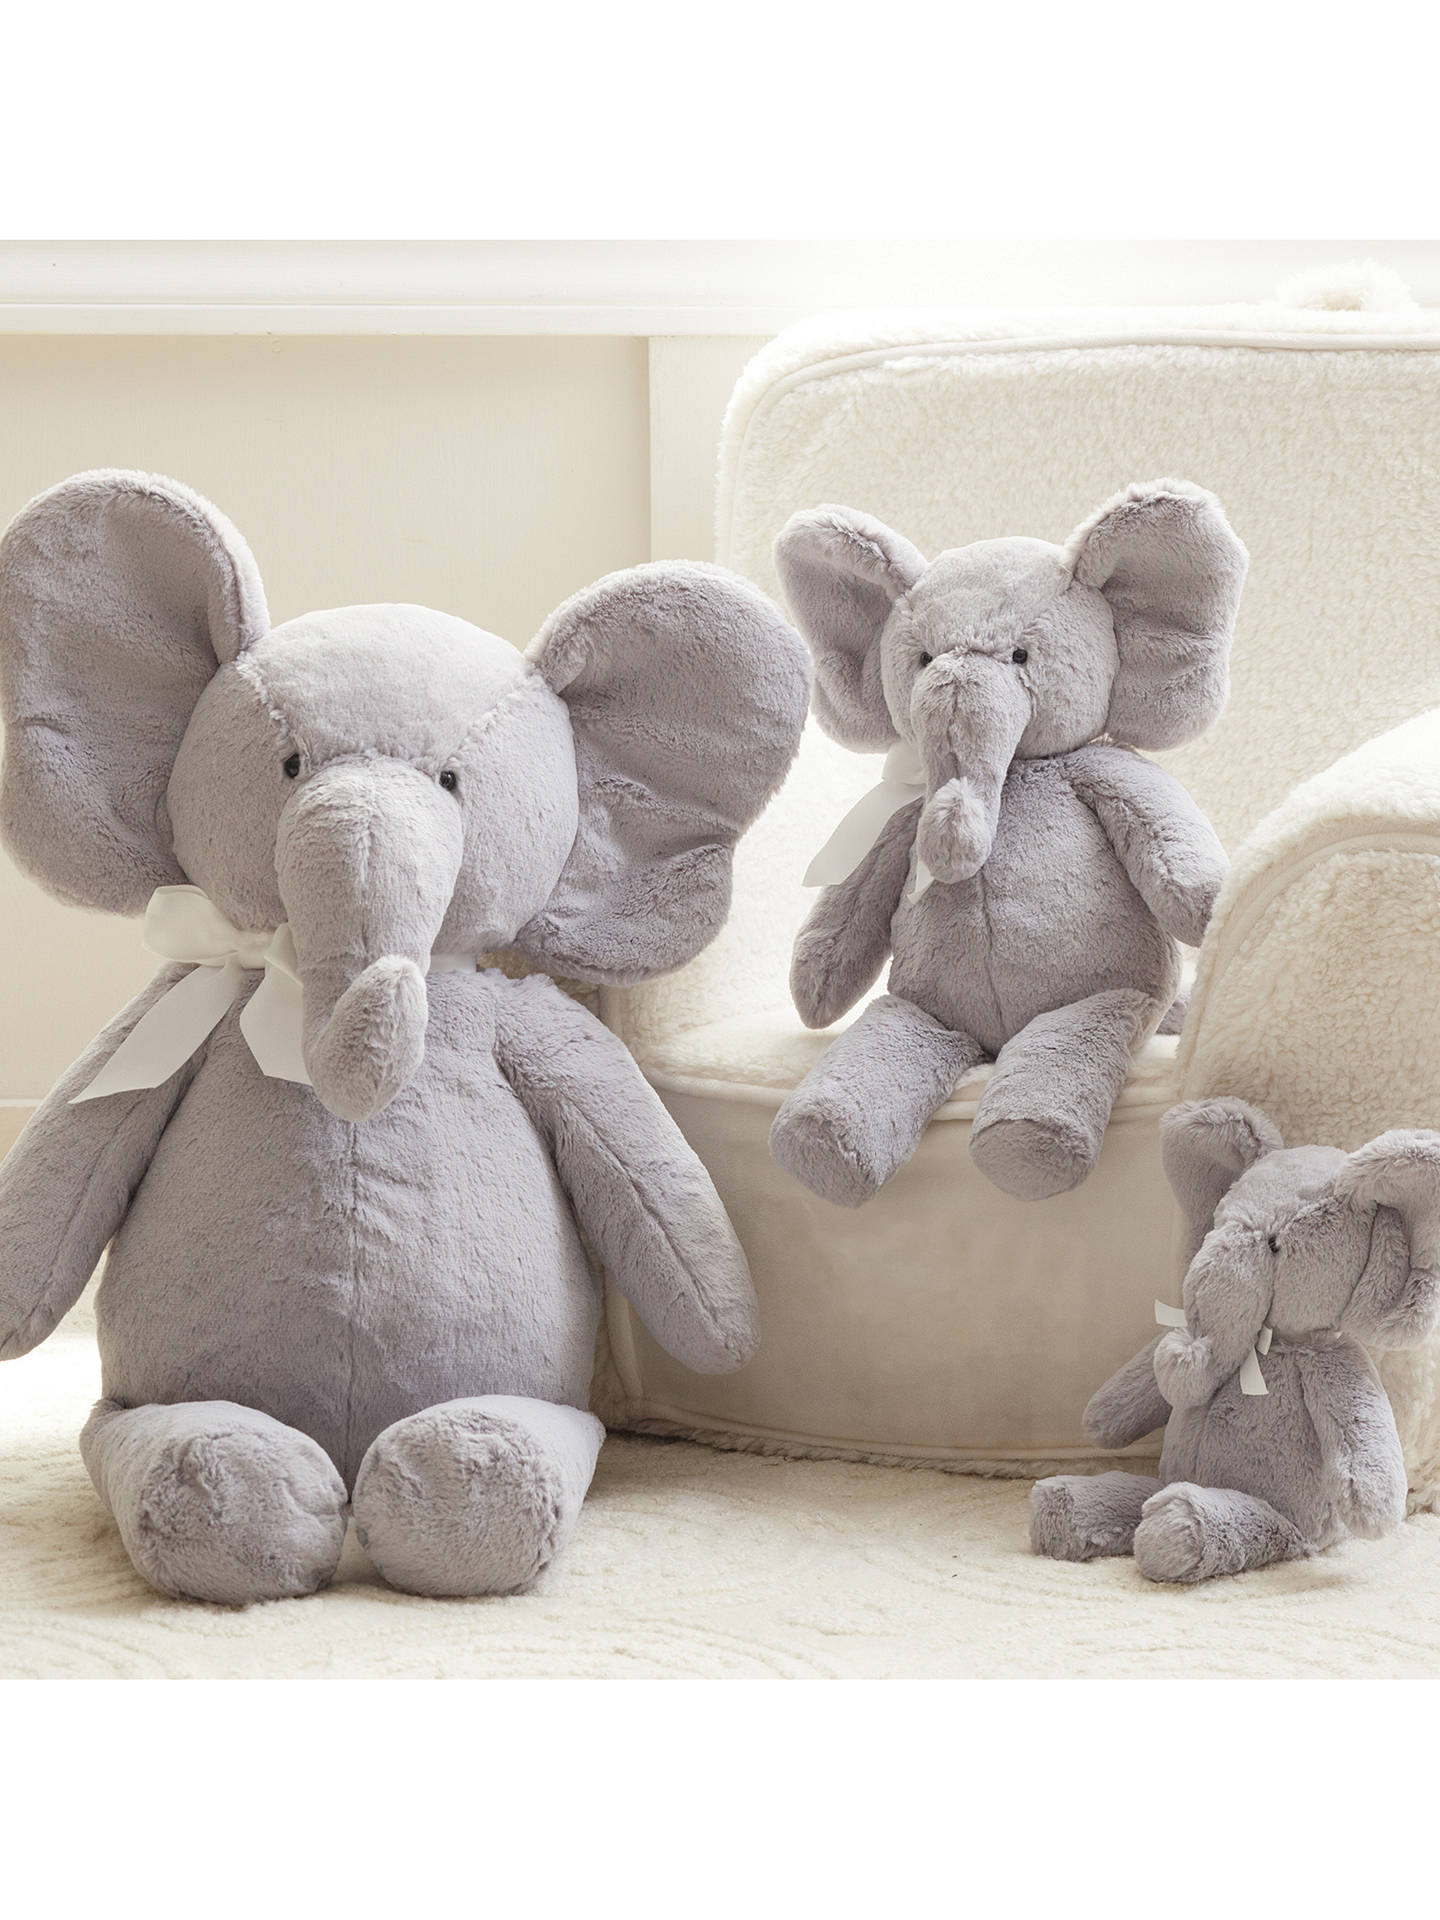 Buy Pottery Barn Kids Plush Elephant Soft Toy Online at johnlewis.com